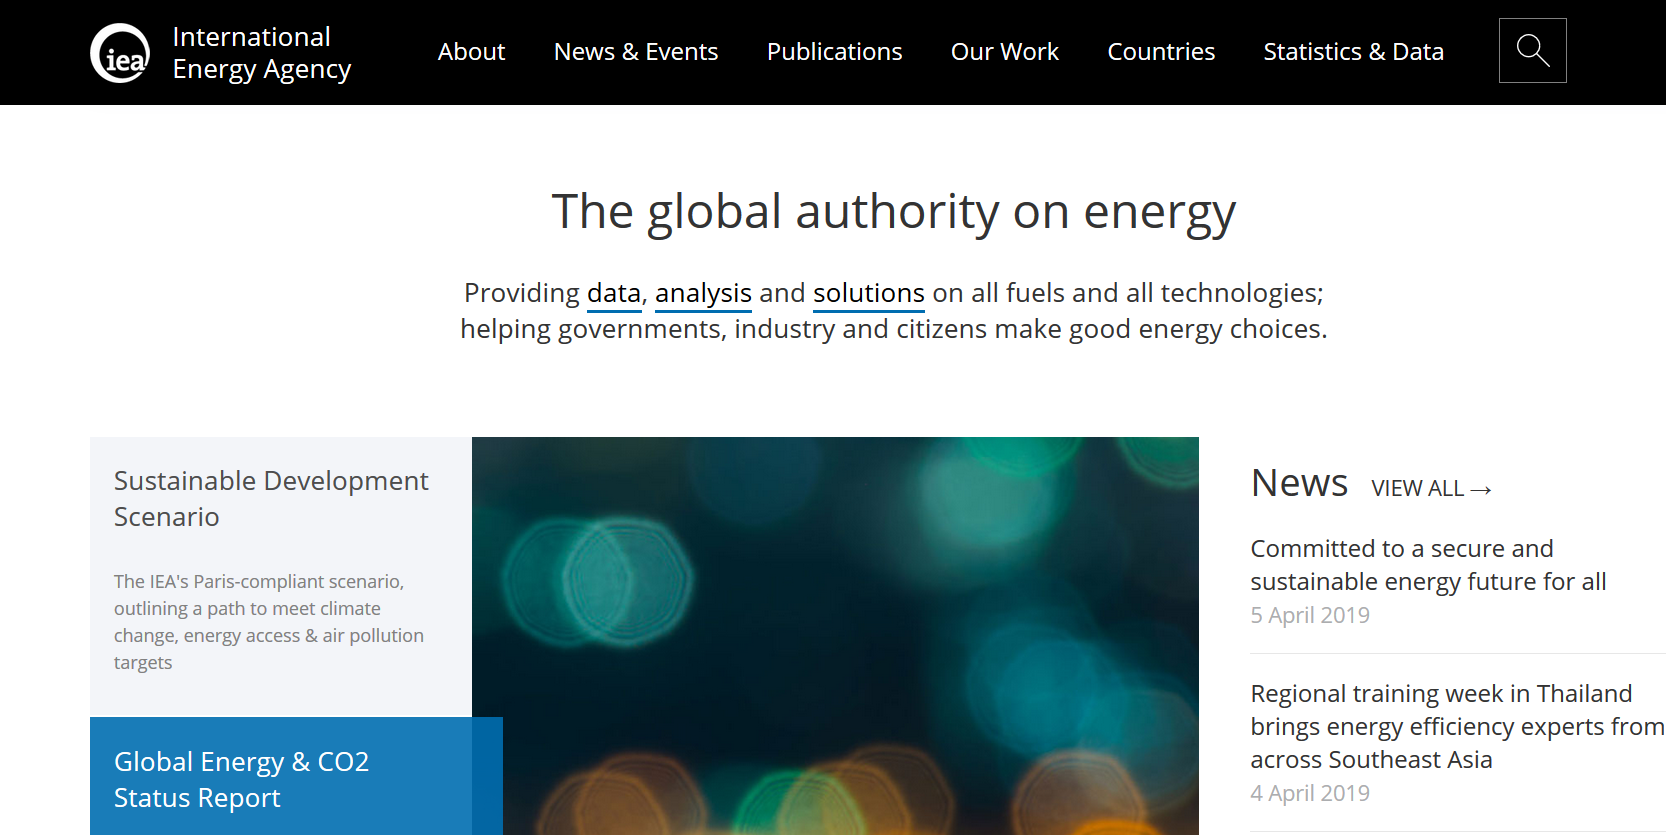 IEA defends its energy forecasts which 'steer world towards massive fossil fuel growth'